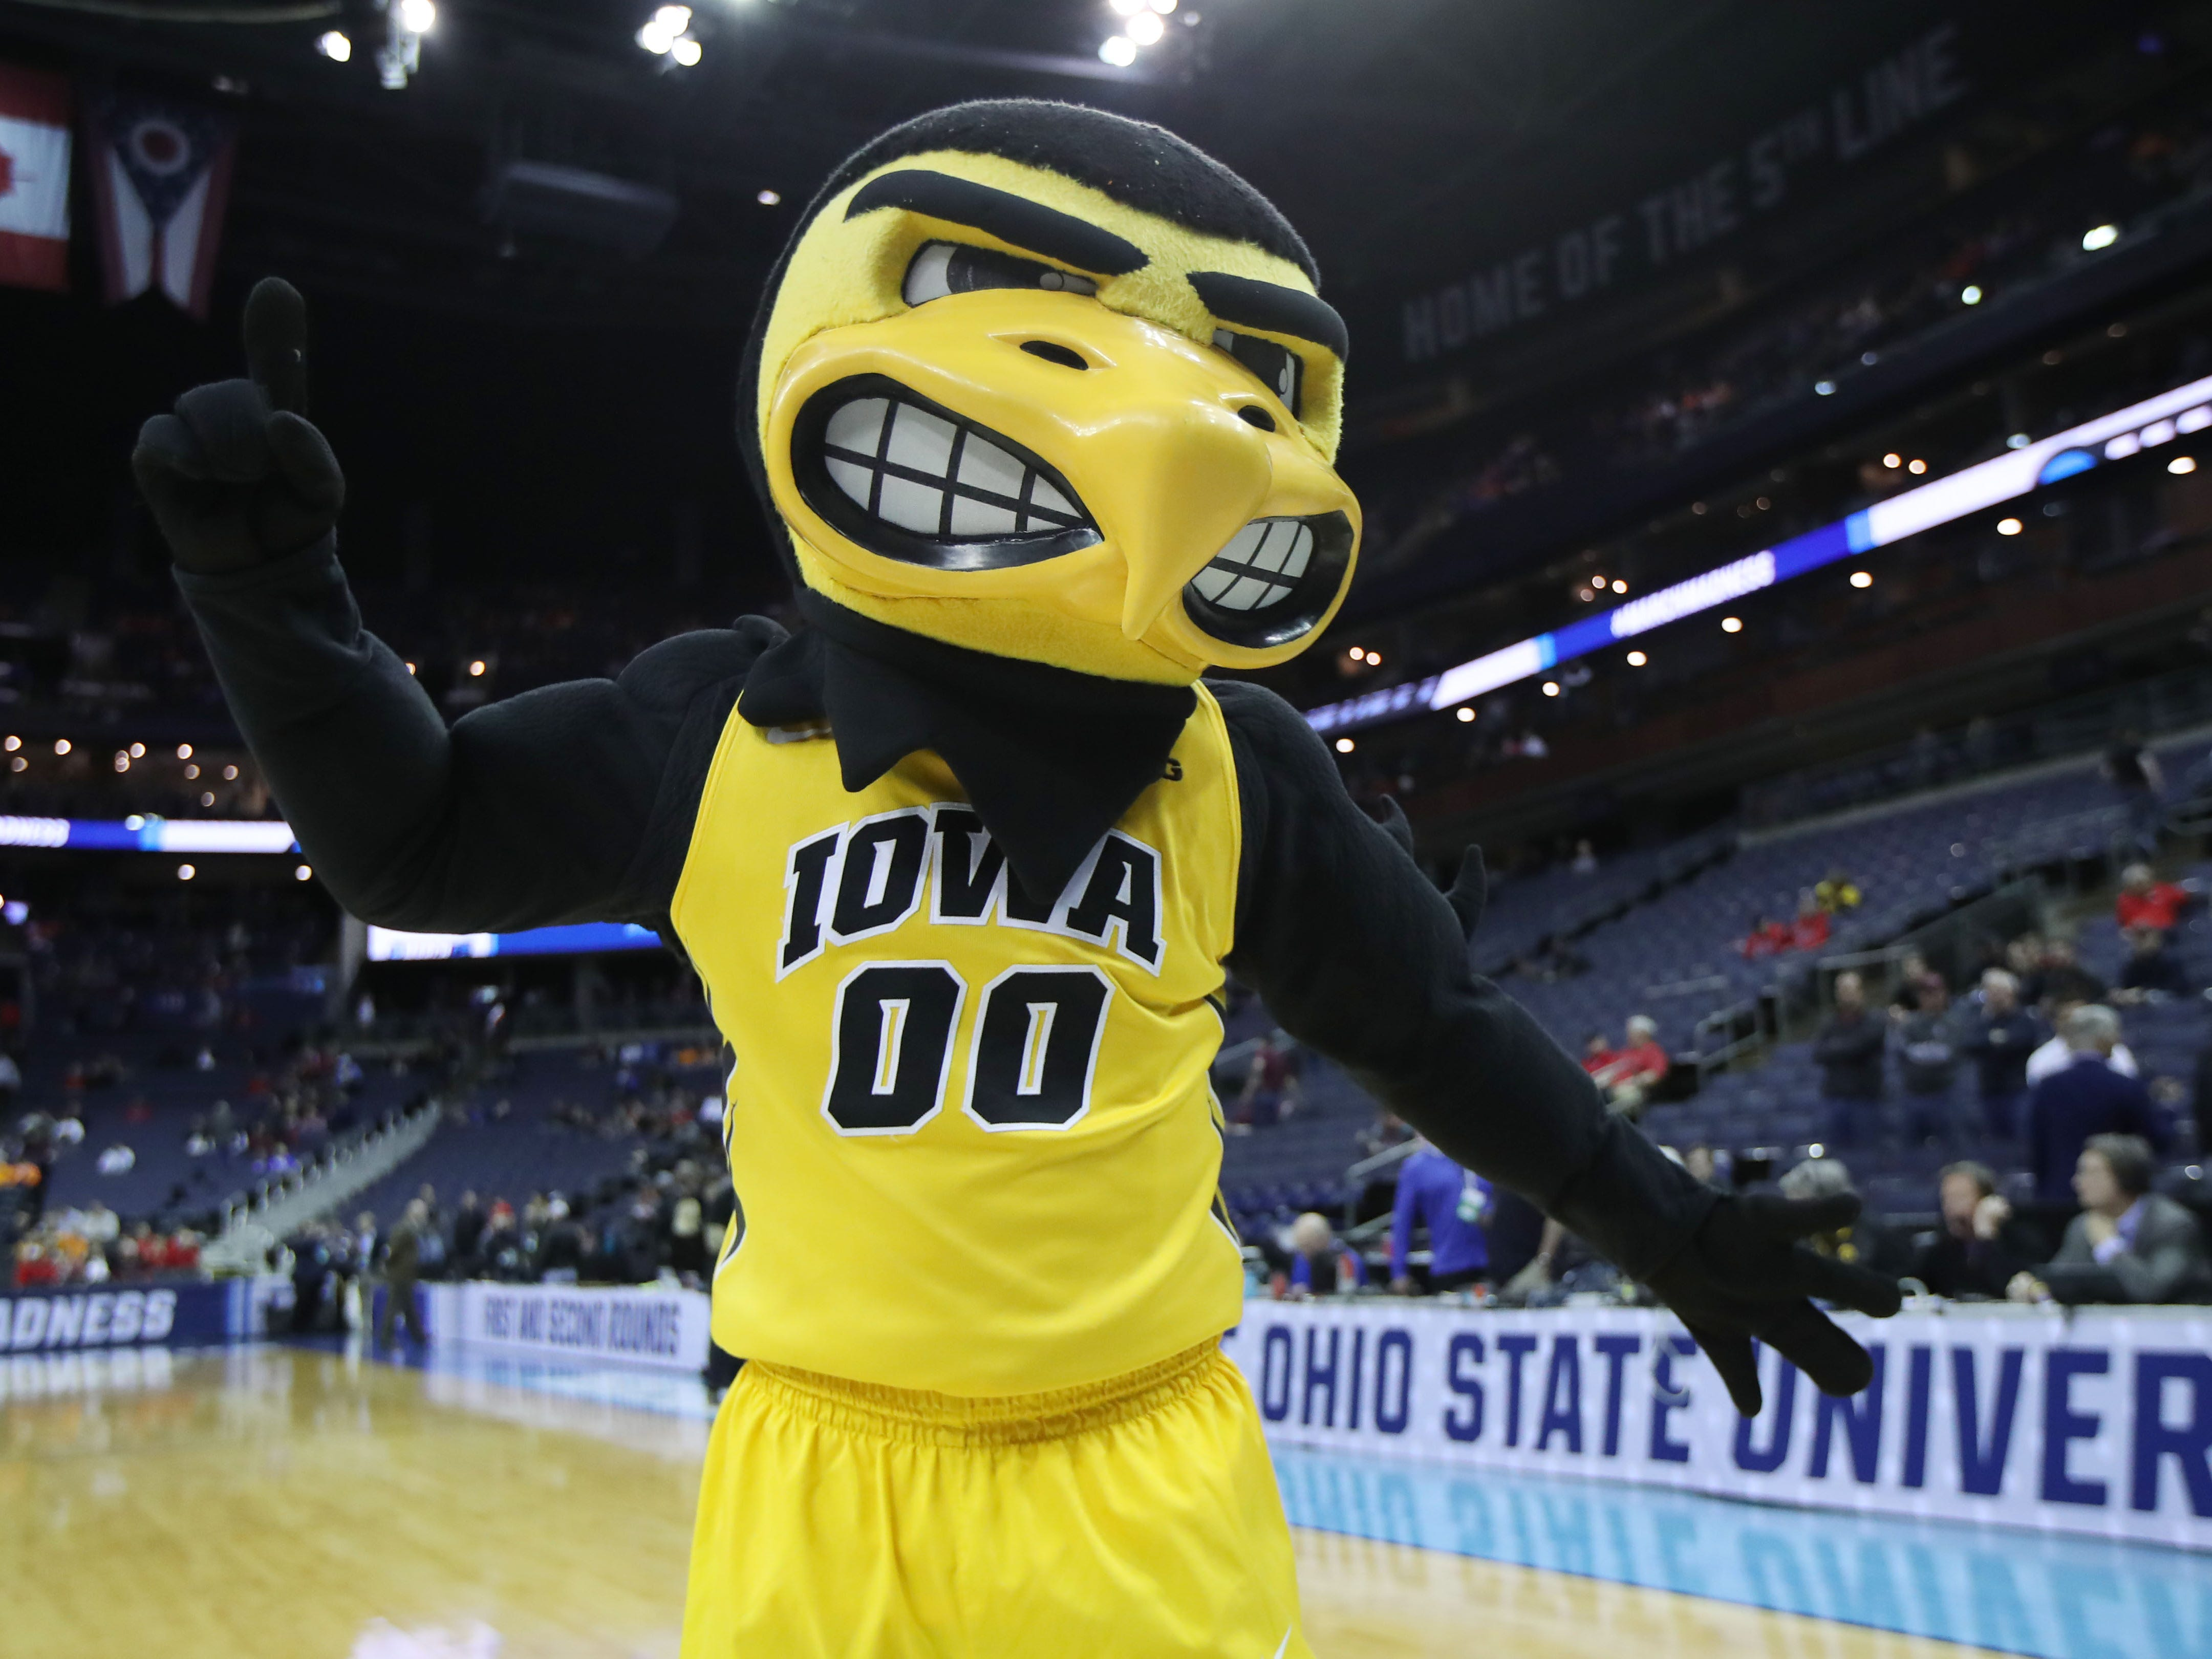 First round: The Iowa Hawkeyes mascot before the game against the Cincinnati Bearcats.